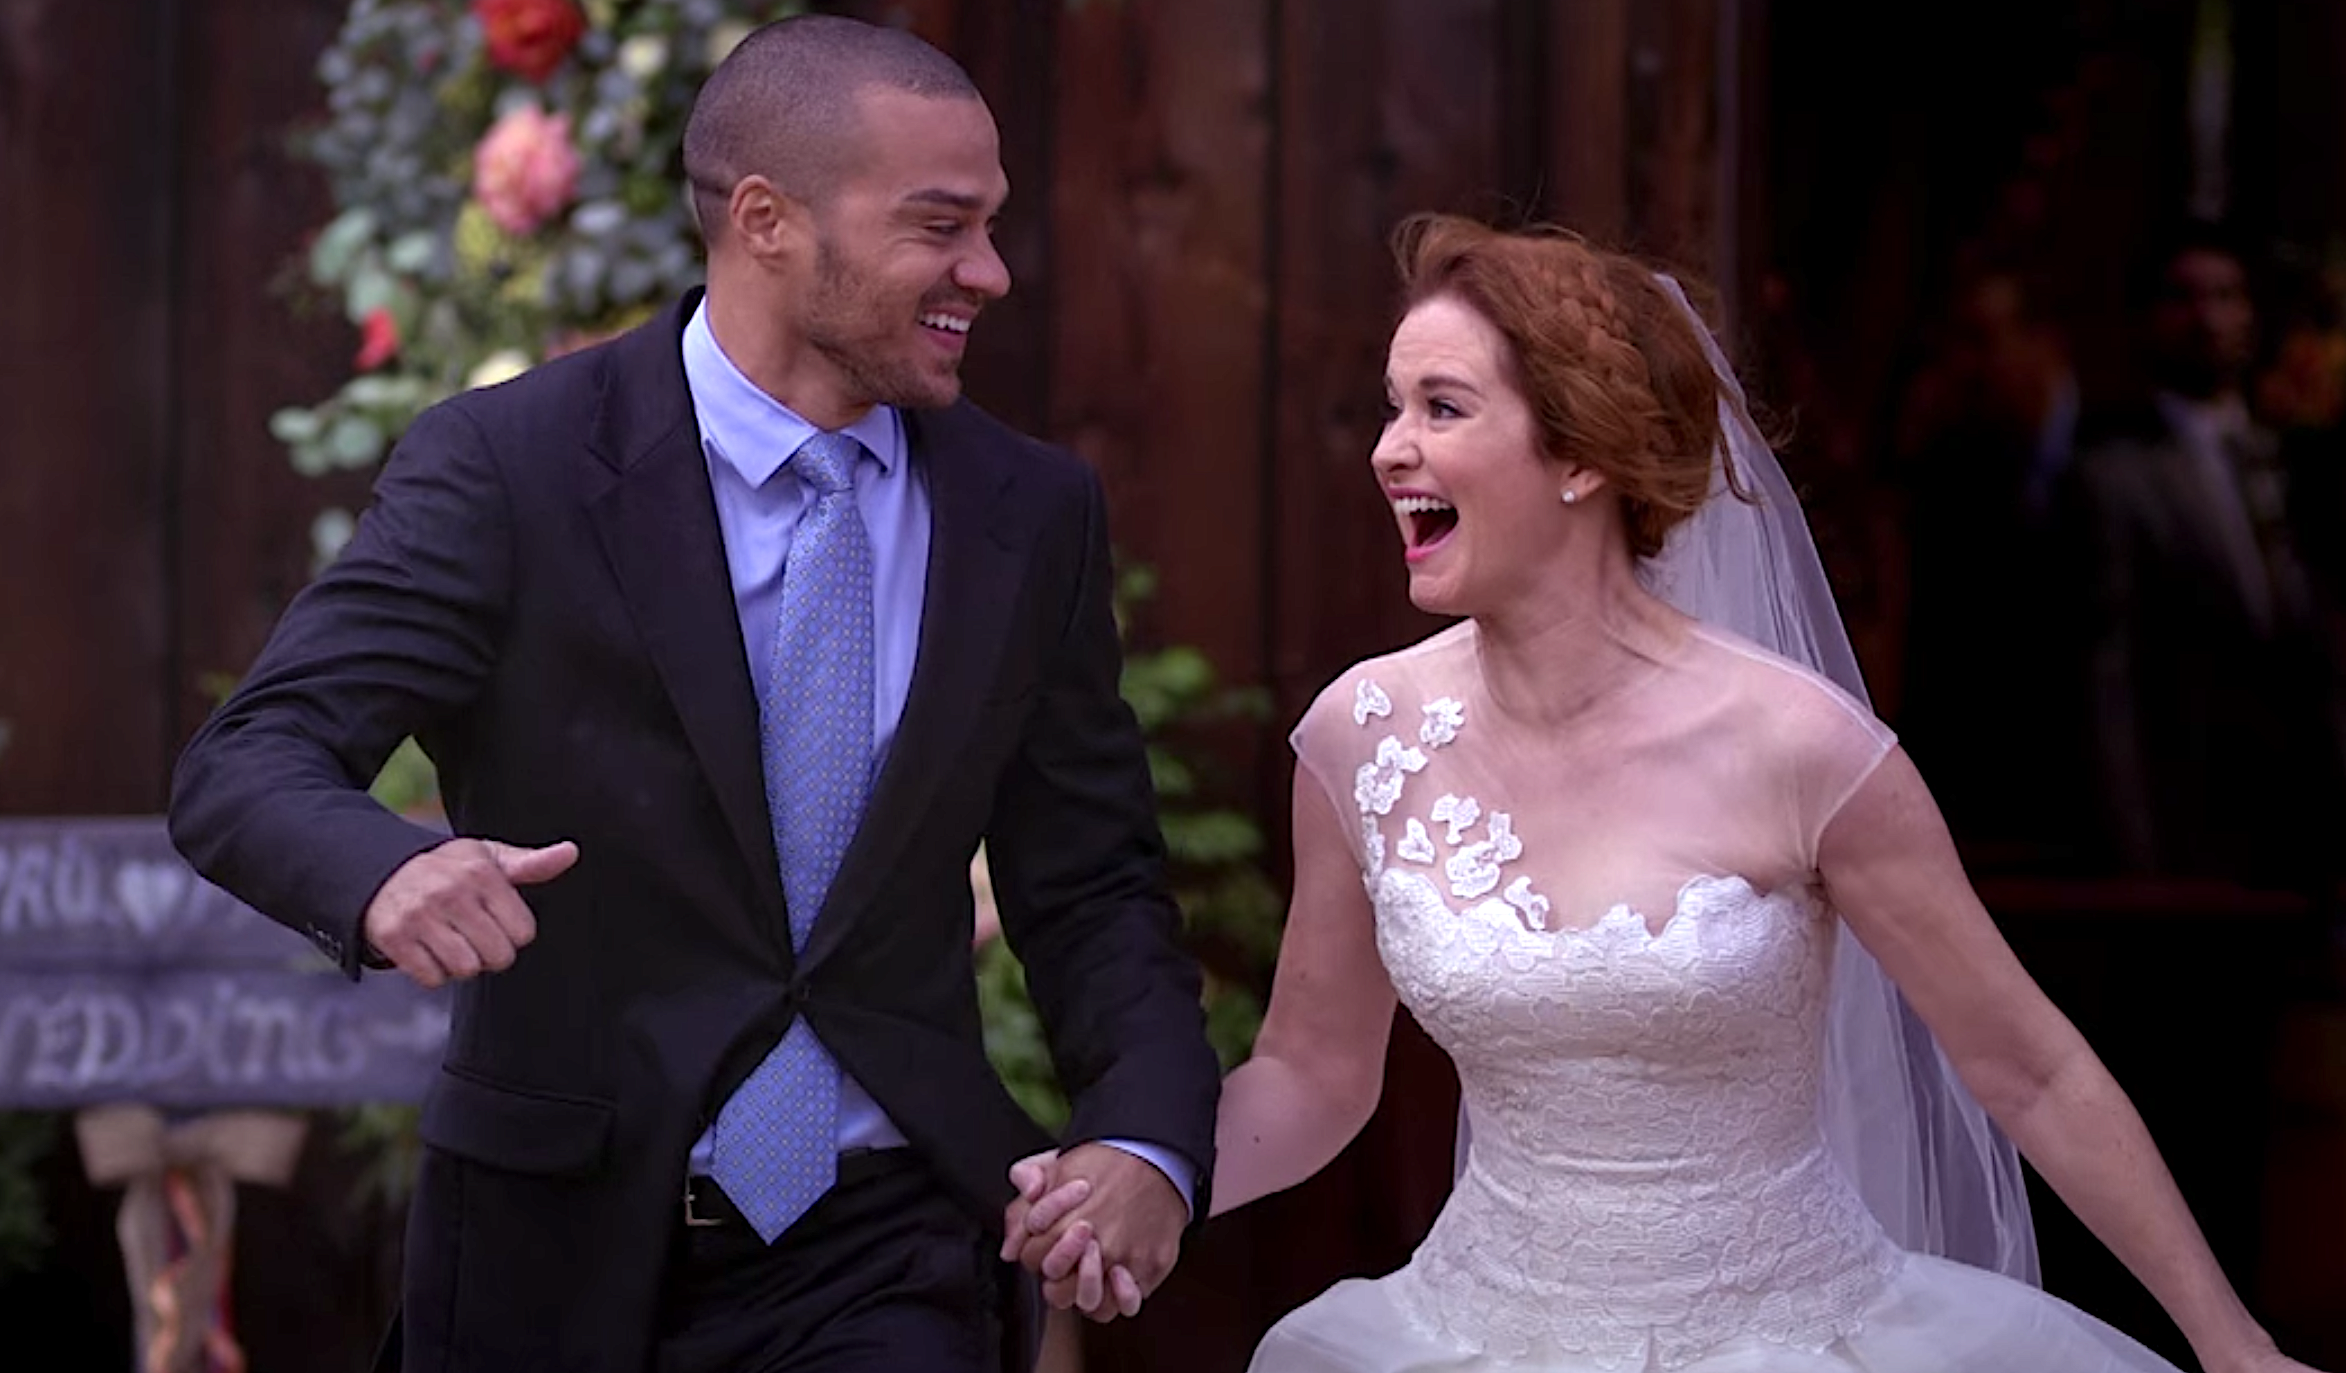 Grey's Anatomy Jackson Avery and April Kepner run out on her wedding to Matthew